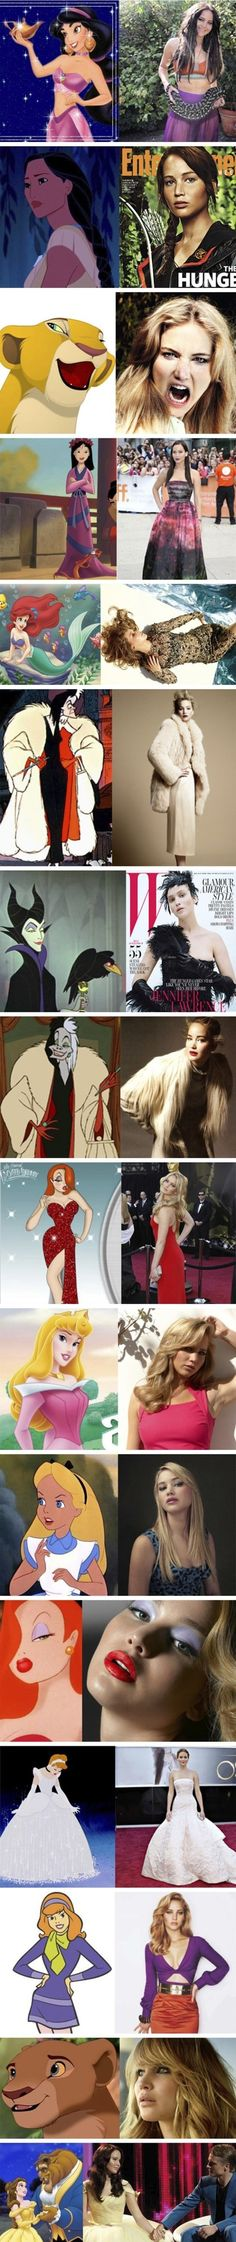 Jennifer Lawrence is all the characters. Another reason to love her. | See more about disney princesses, jennifer lawrence and disney.